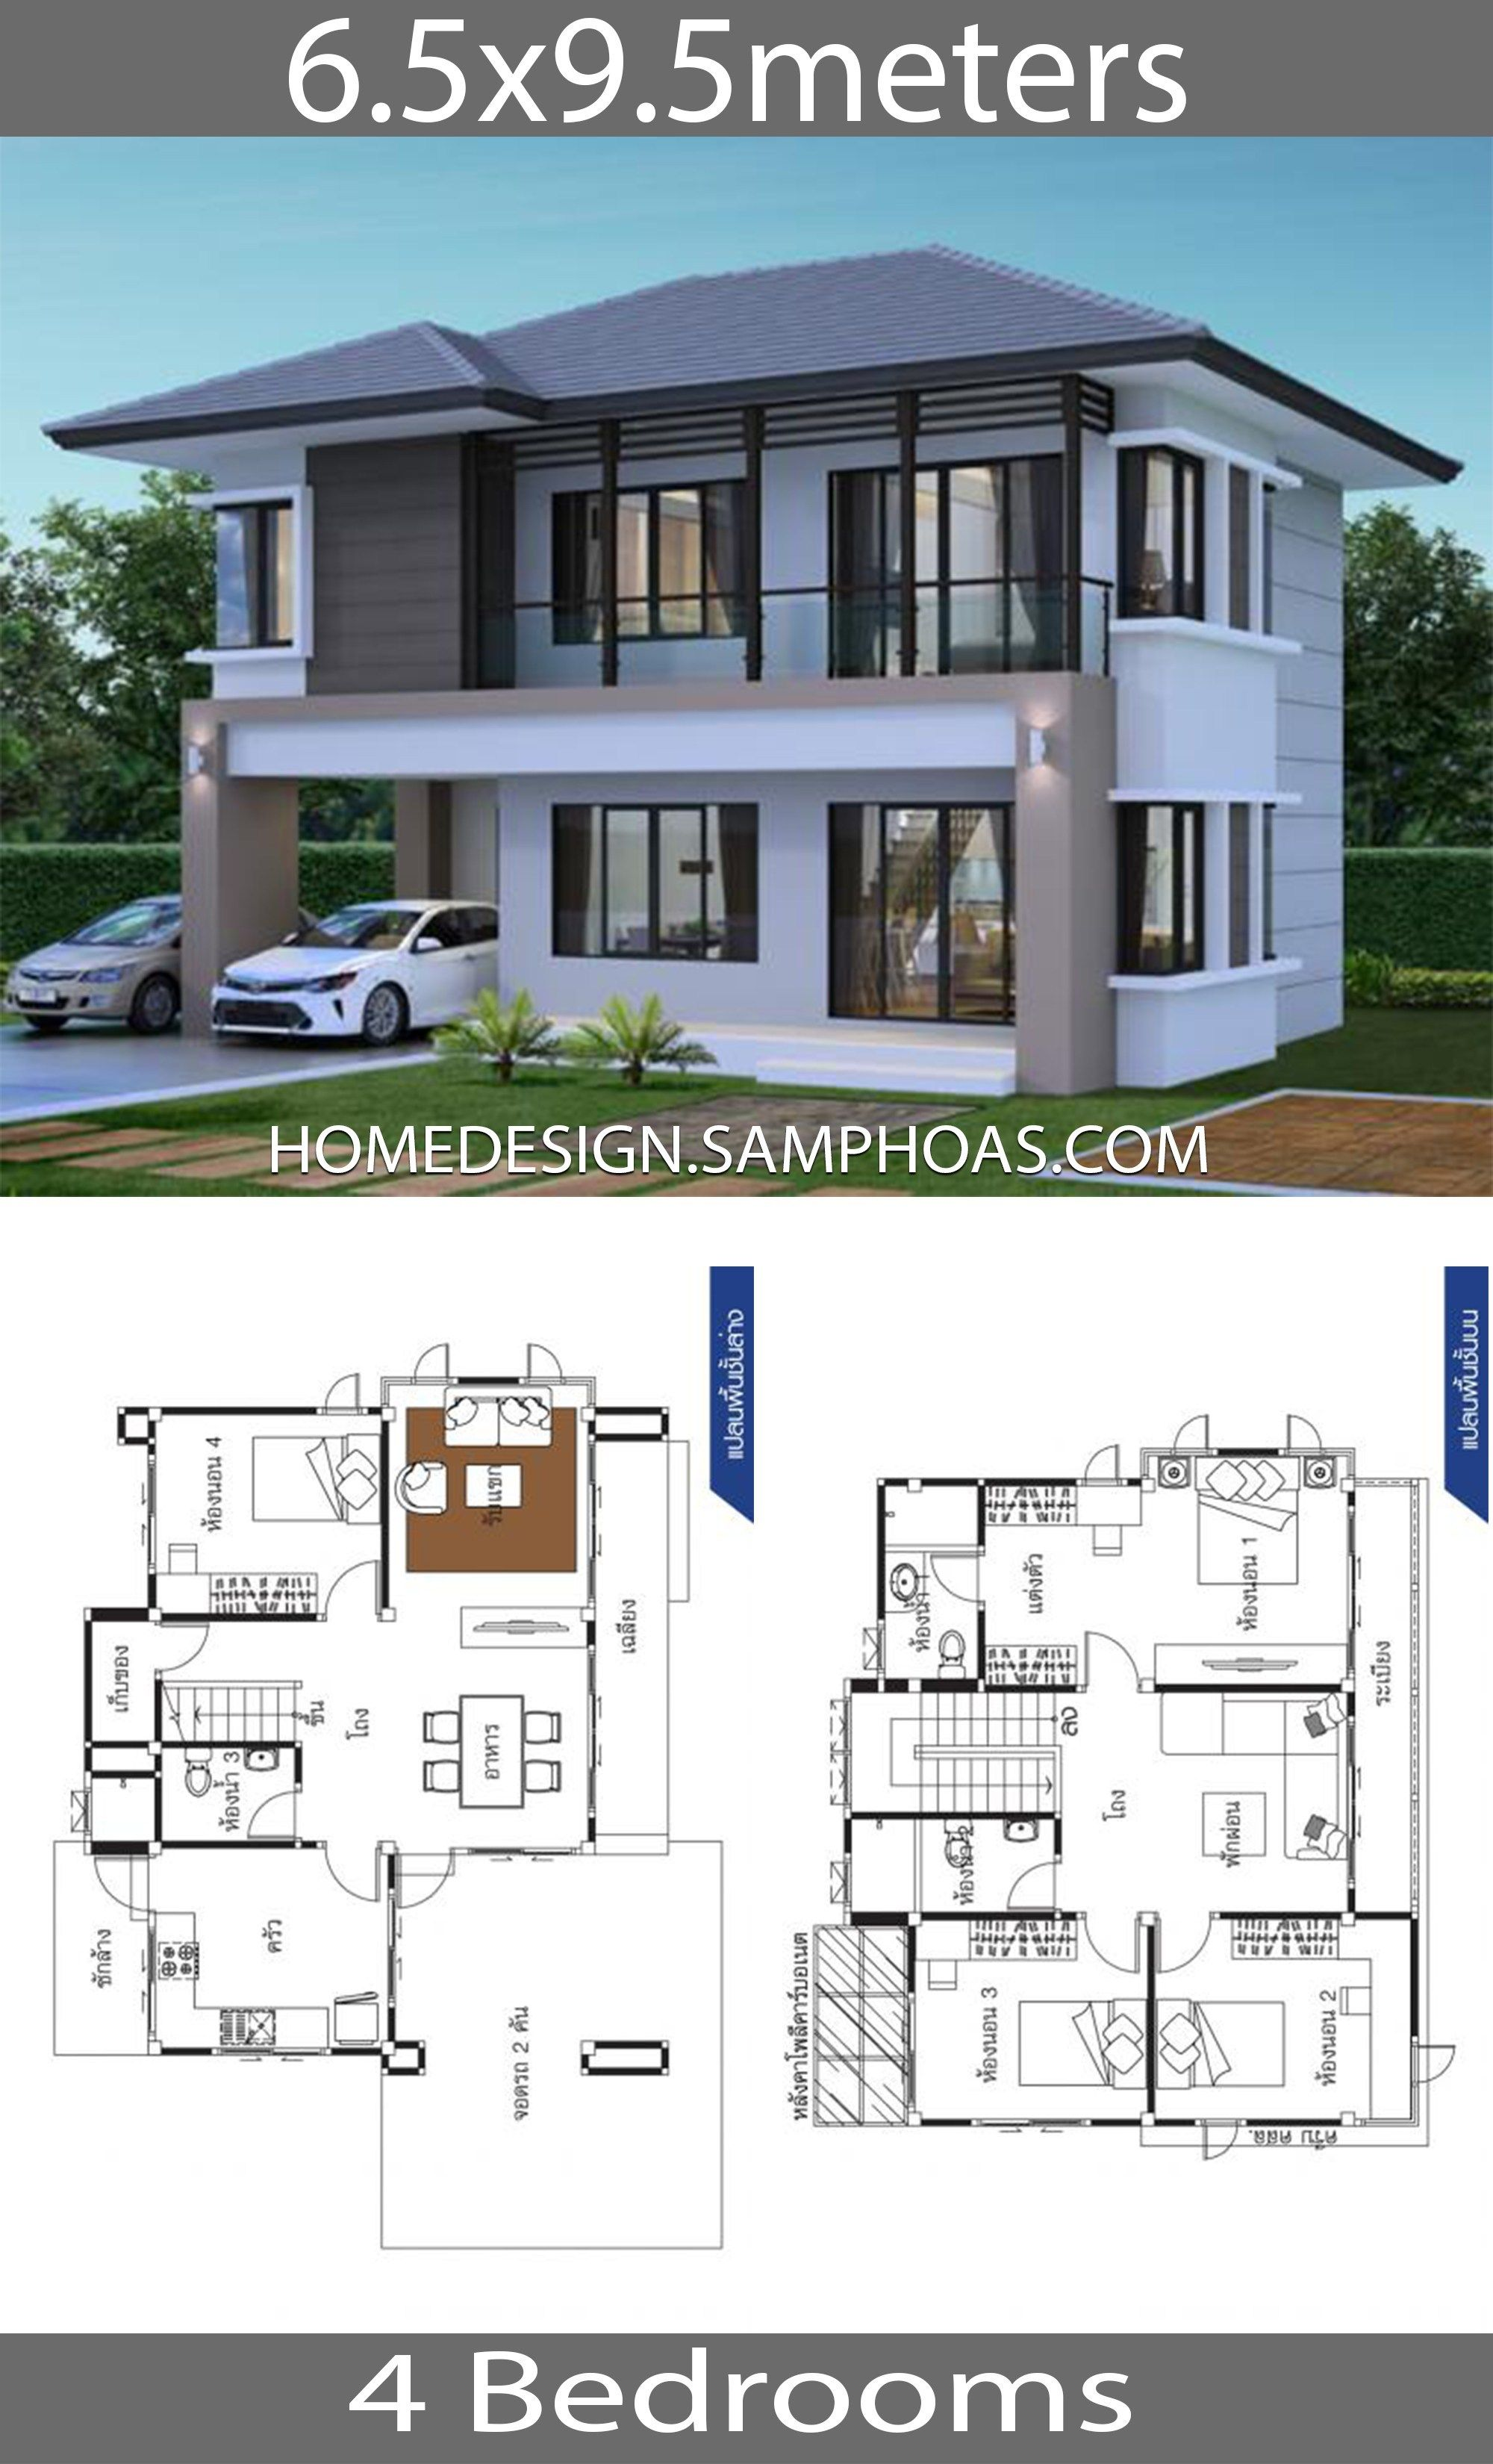 House Ideas 6 5x9 5m With 4 Bedroomshouse Description Ground Level One Bedroom One Car Parking Living Architectural House Plans Model House Plan House Plans